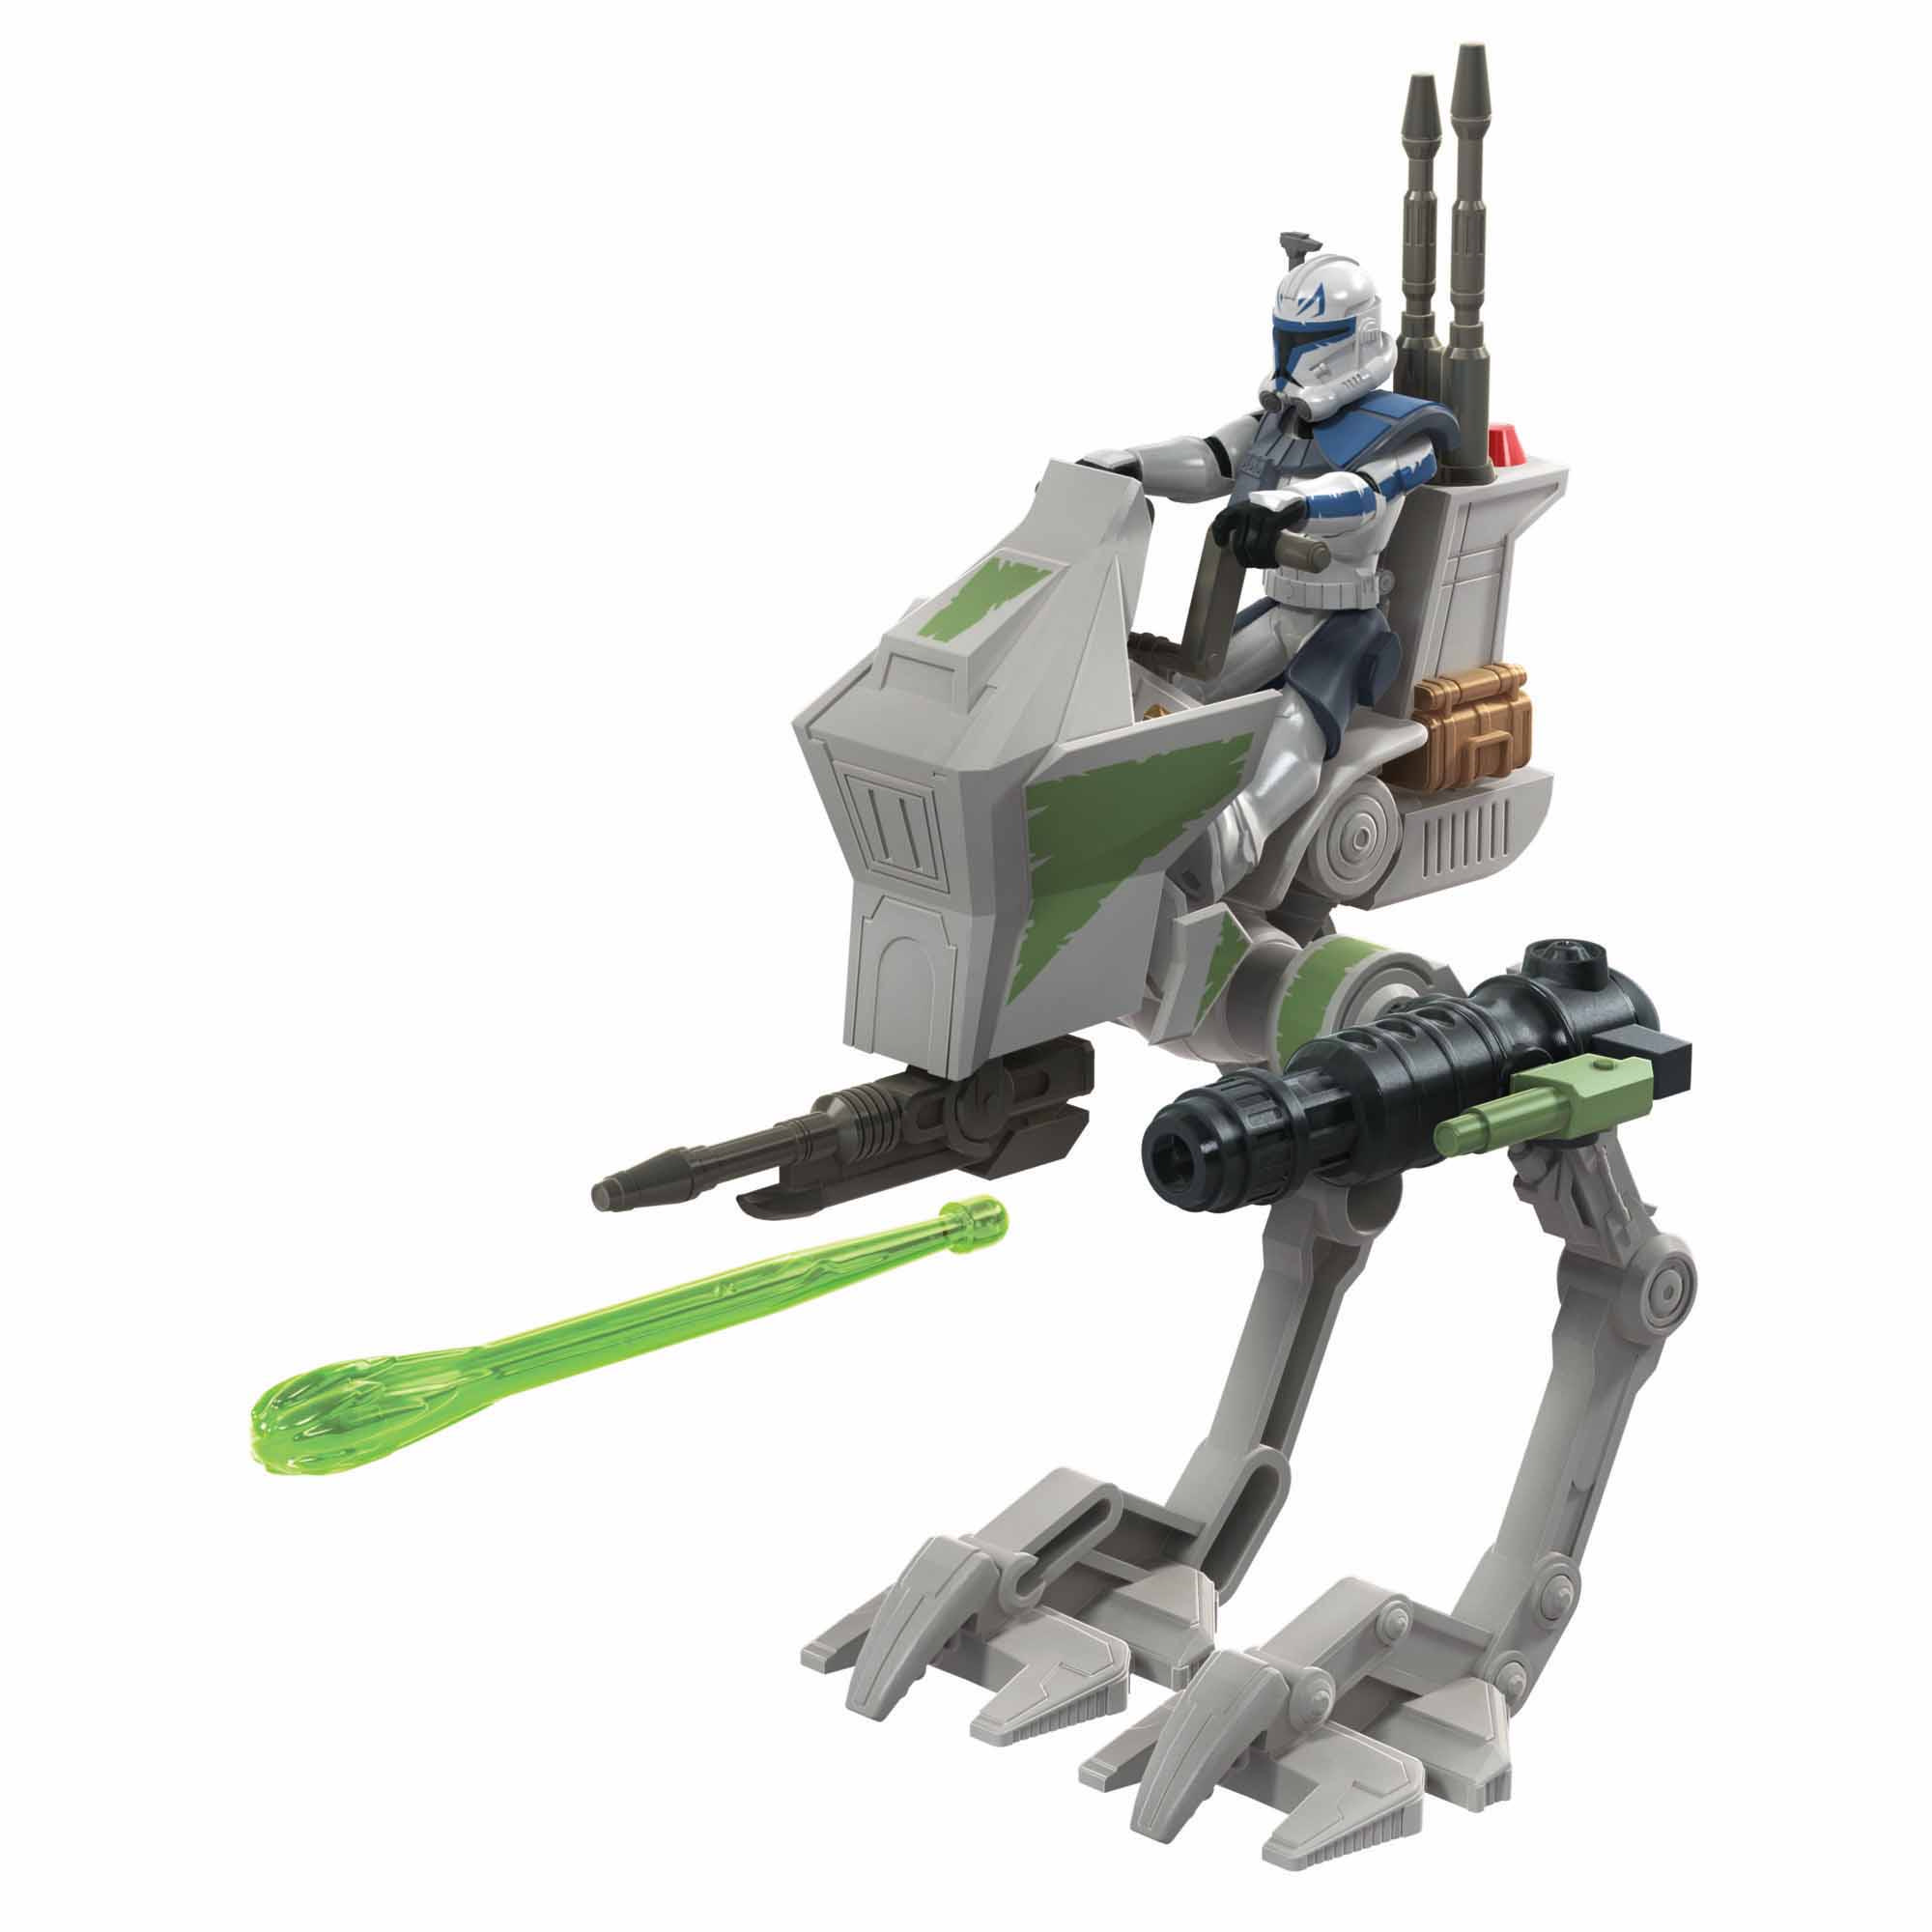 Star Wars Mission Fleet Expedition Class Captain Rex Clone Combat 2.5-Inch-Scale Figure and Vehicle, Kids Ages 4 and Up